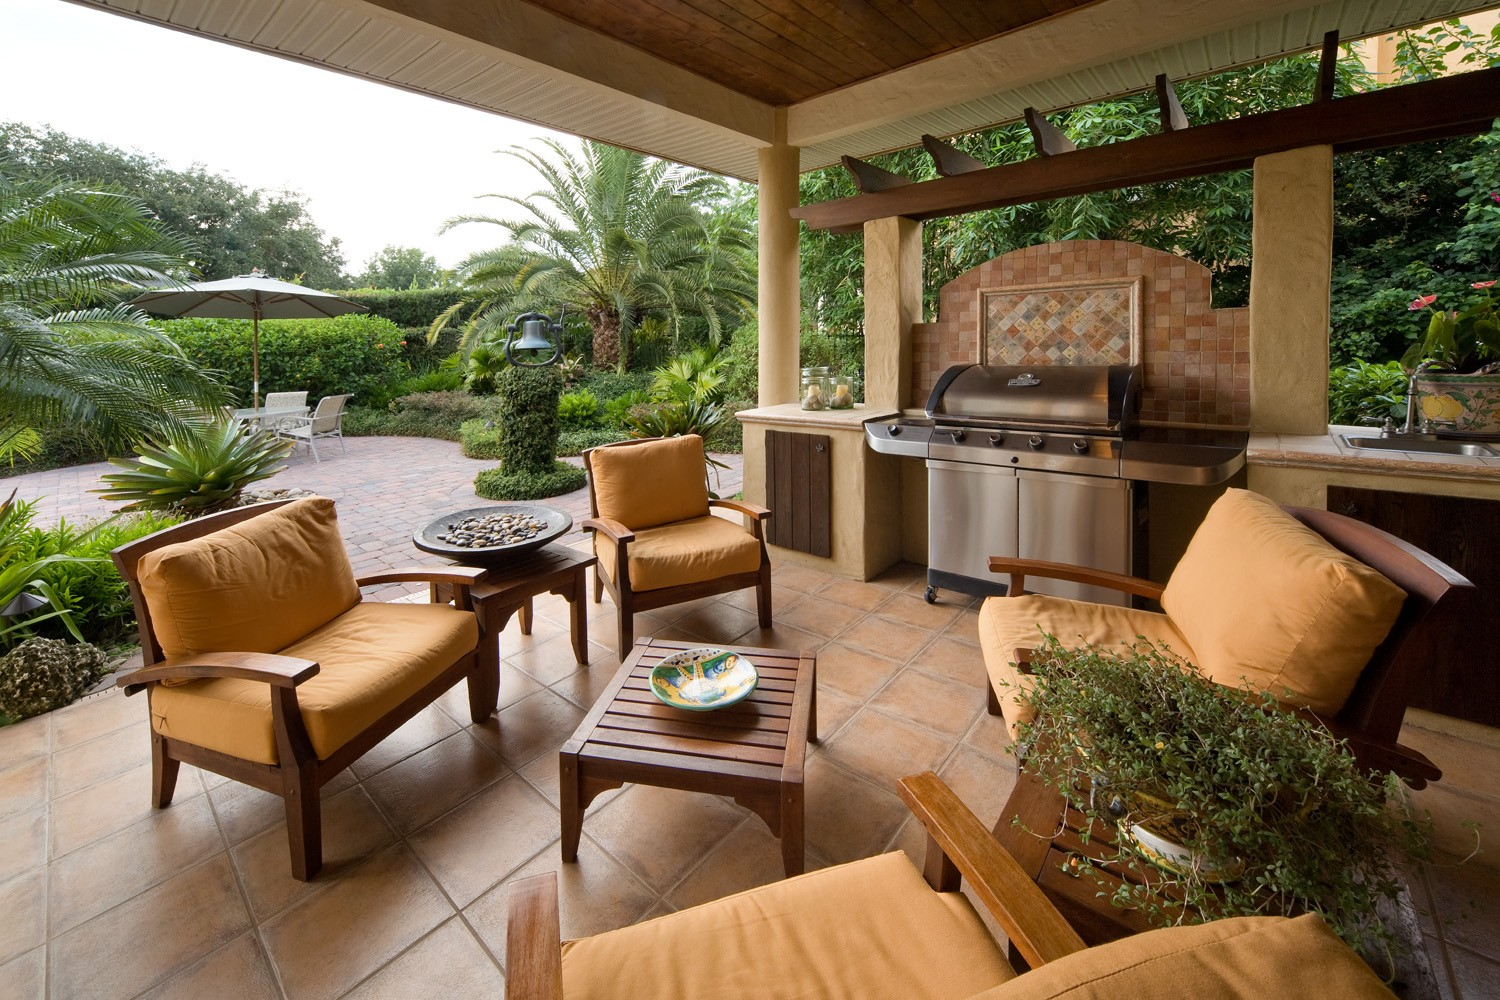 Place Wooden Living Spaces Furniture for Old Fashined Patio with Barbeque Counter and Stone Flooring